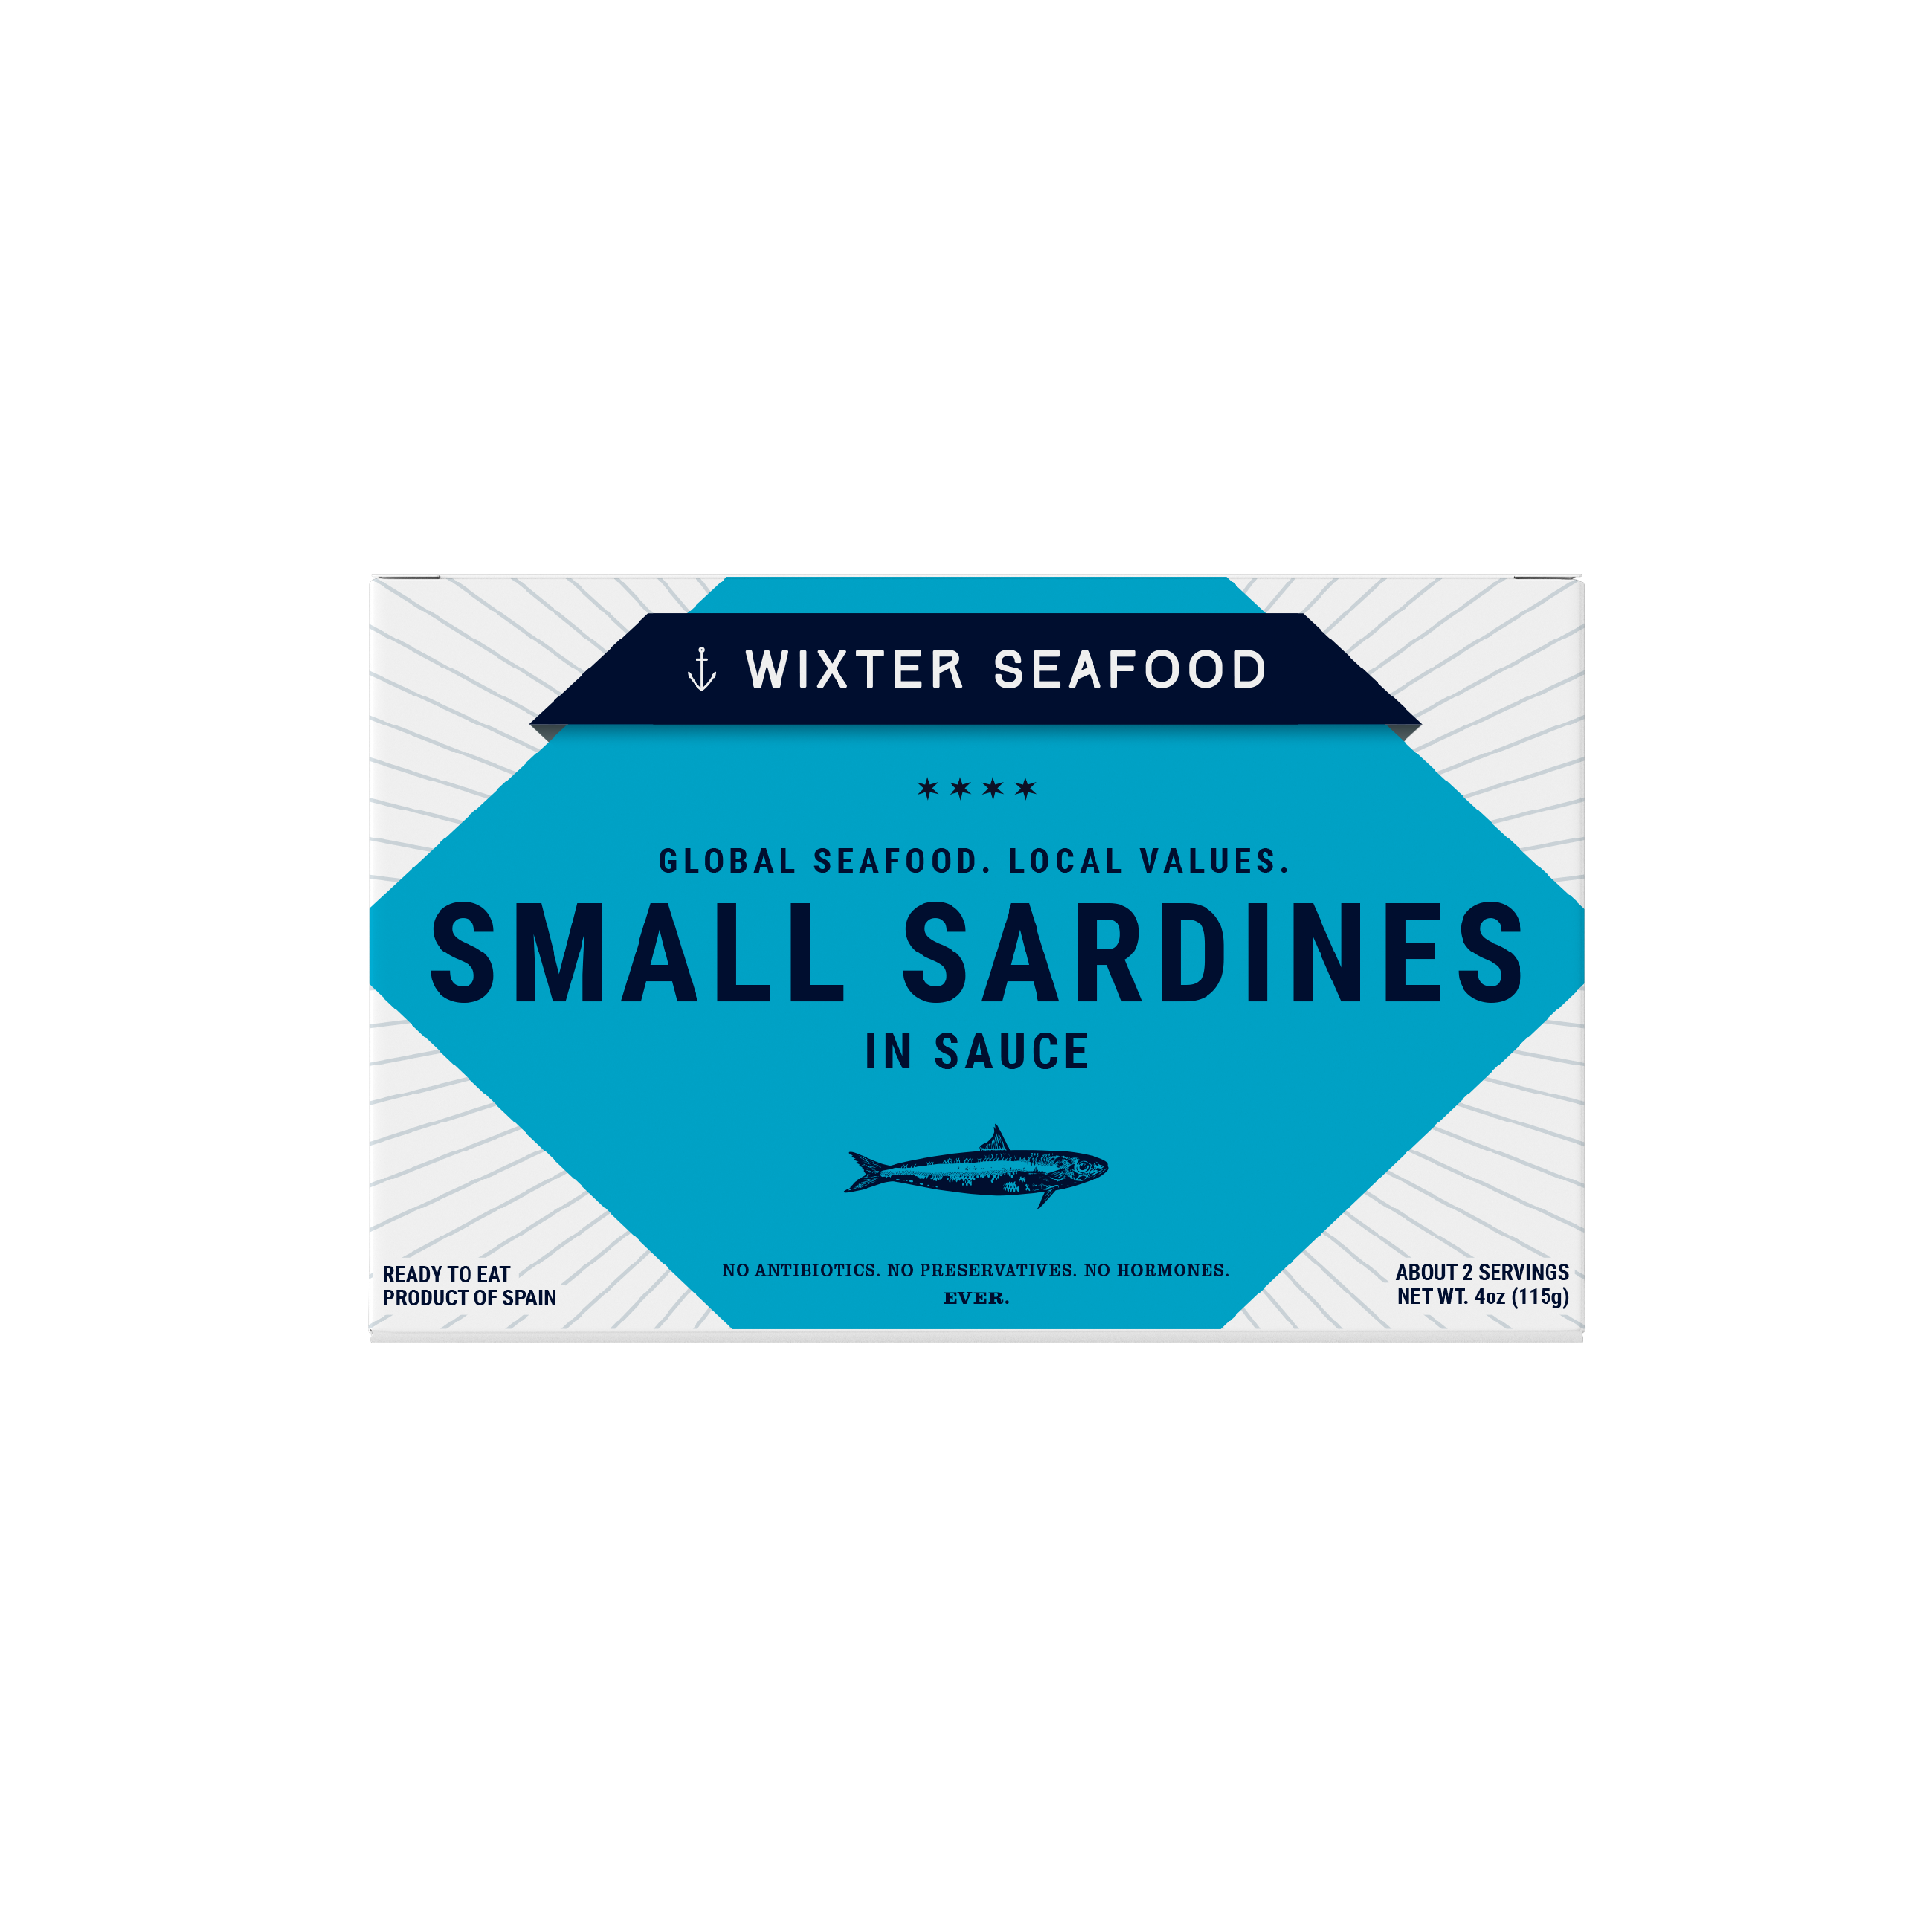 Small Sardines in Sauce